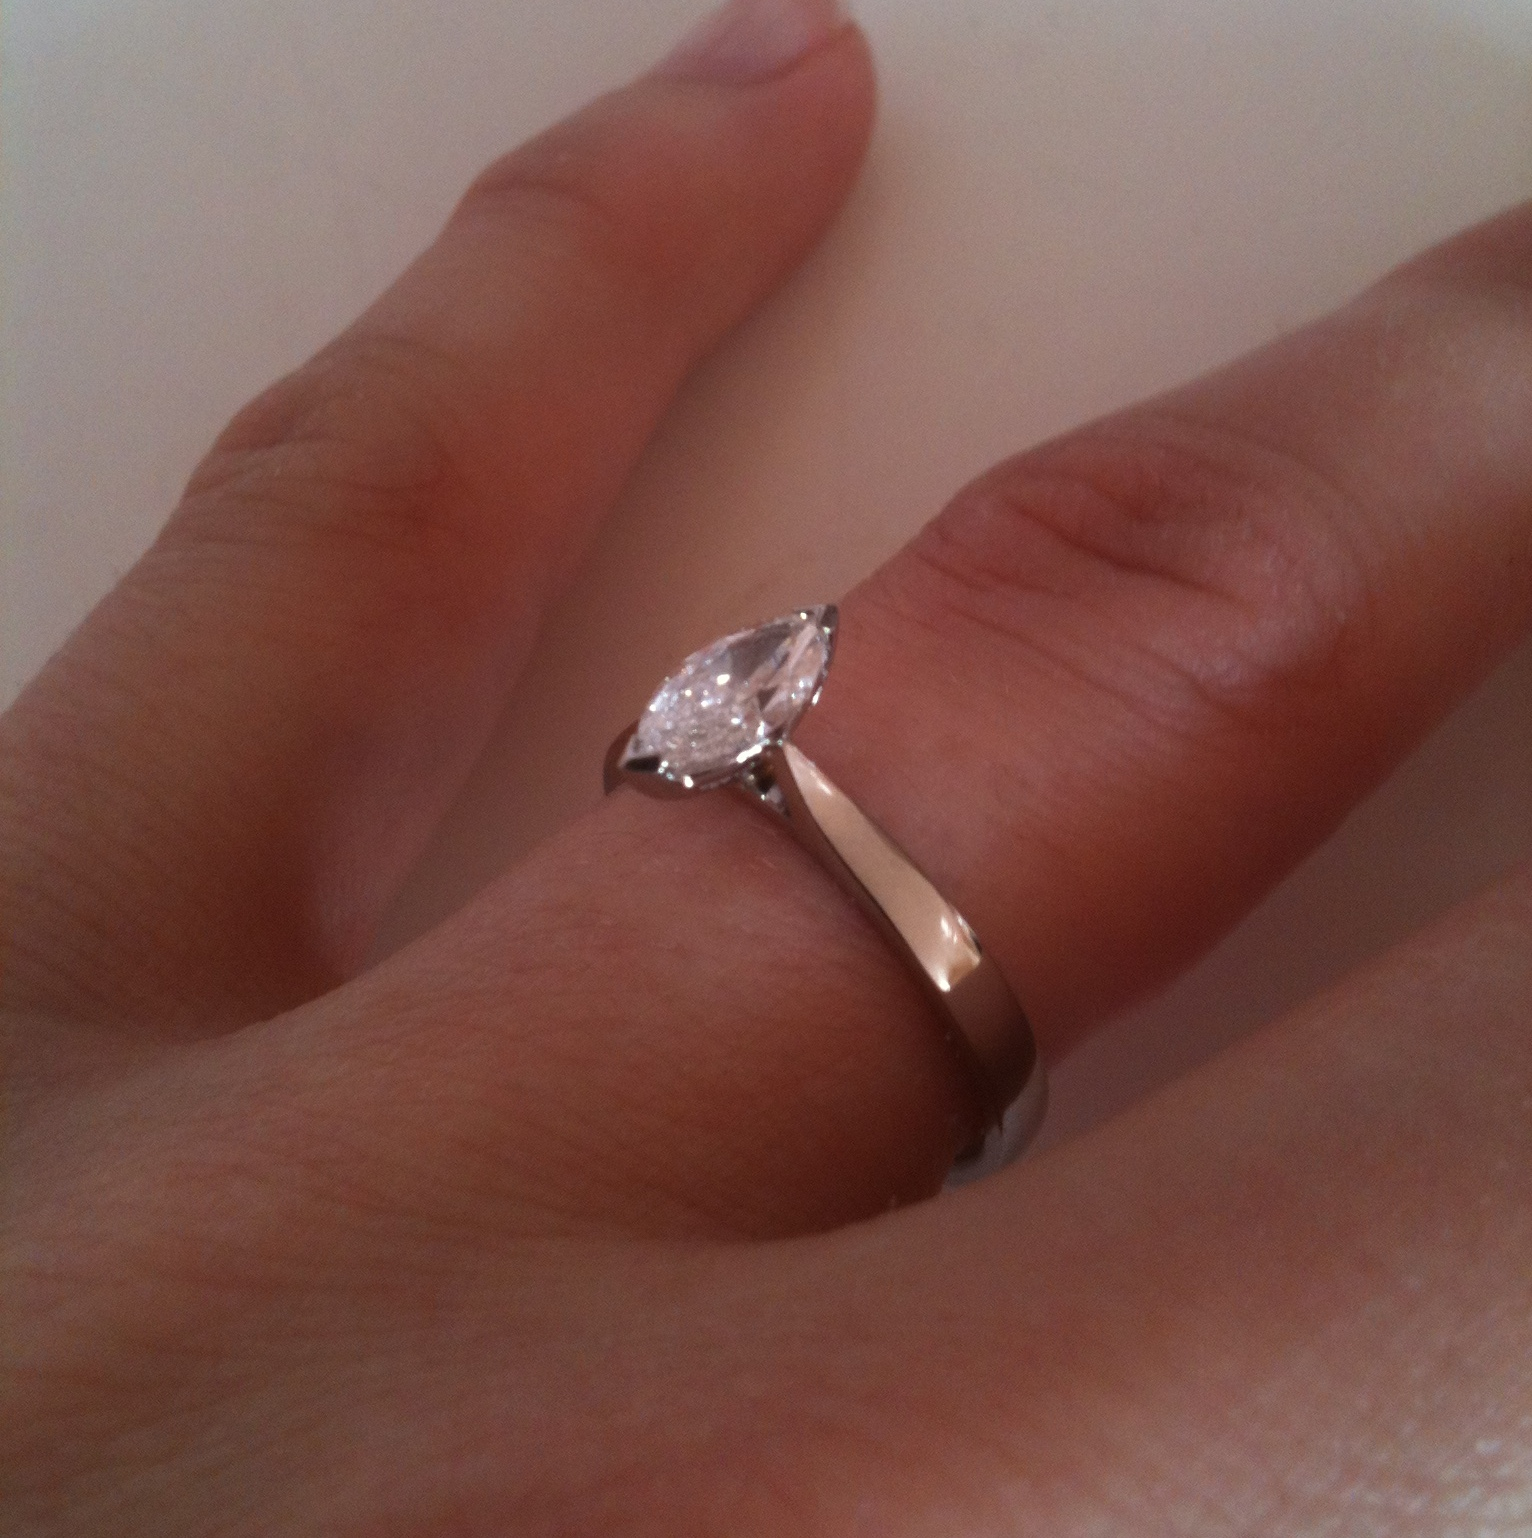 Diamonds And Rings Specialists In Bespoke Diamond Rings